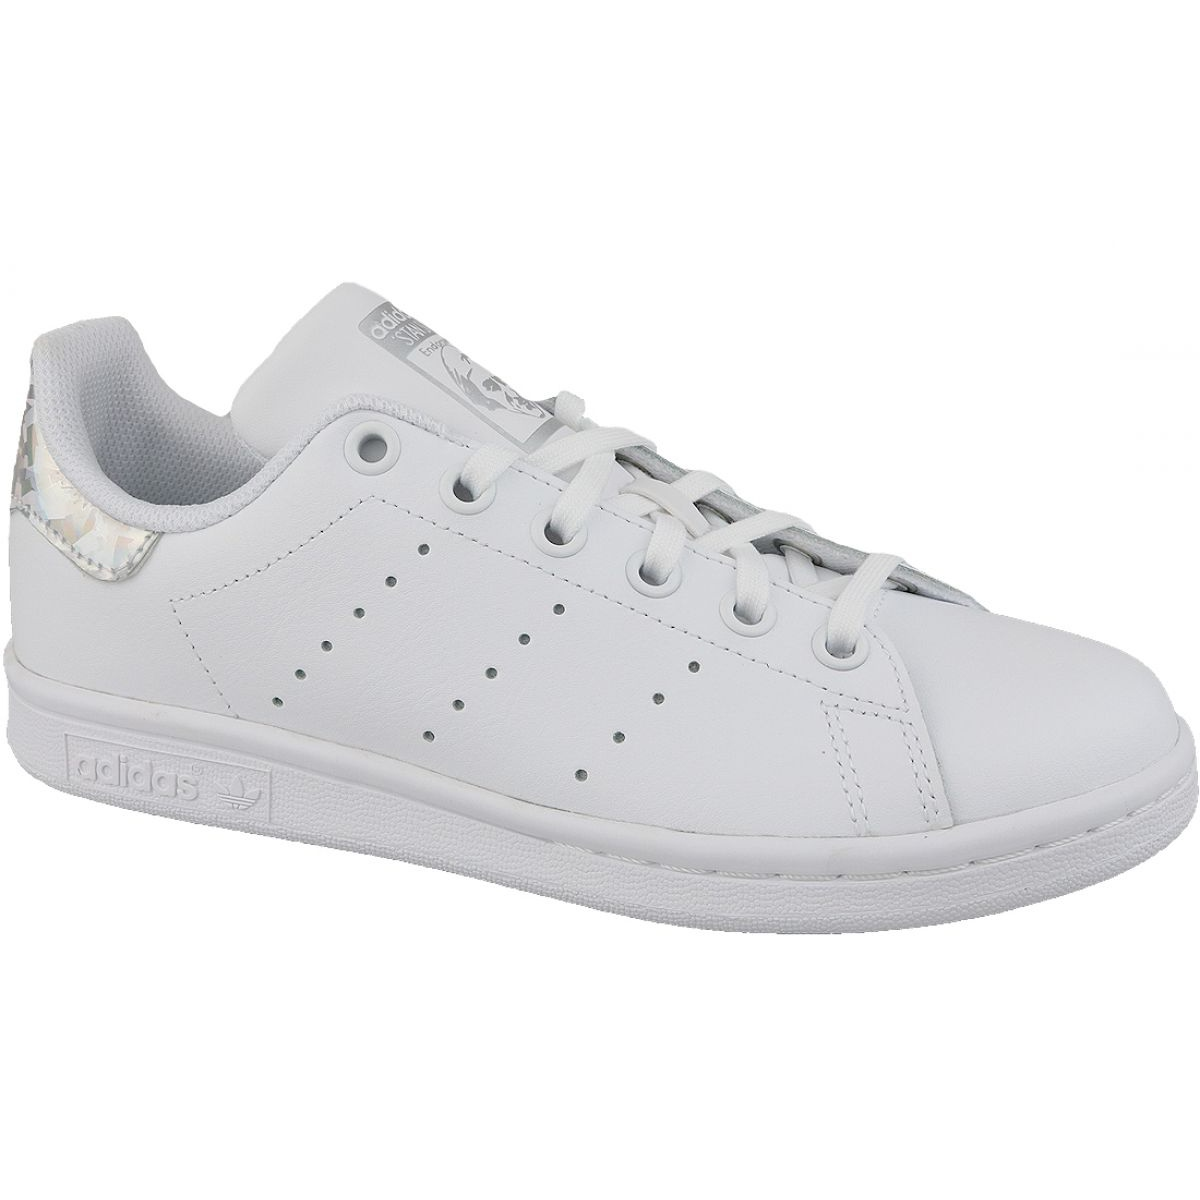 Details about Adidas Stan Smith Jr EE8483 shoes white